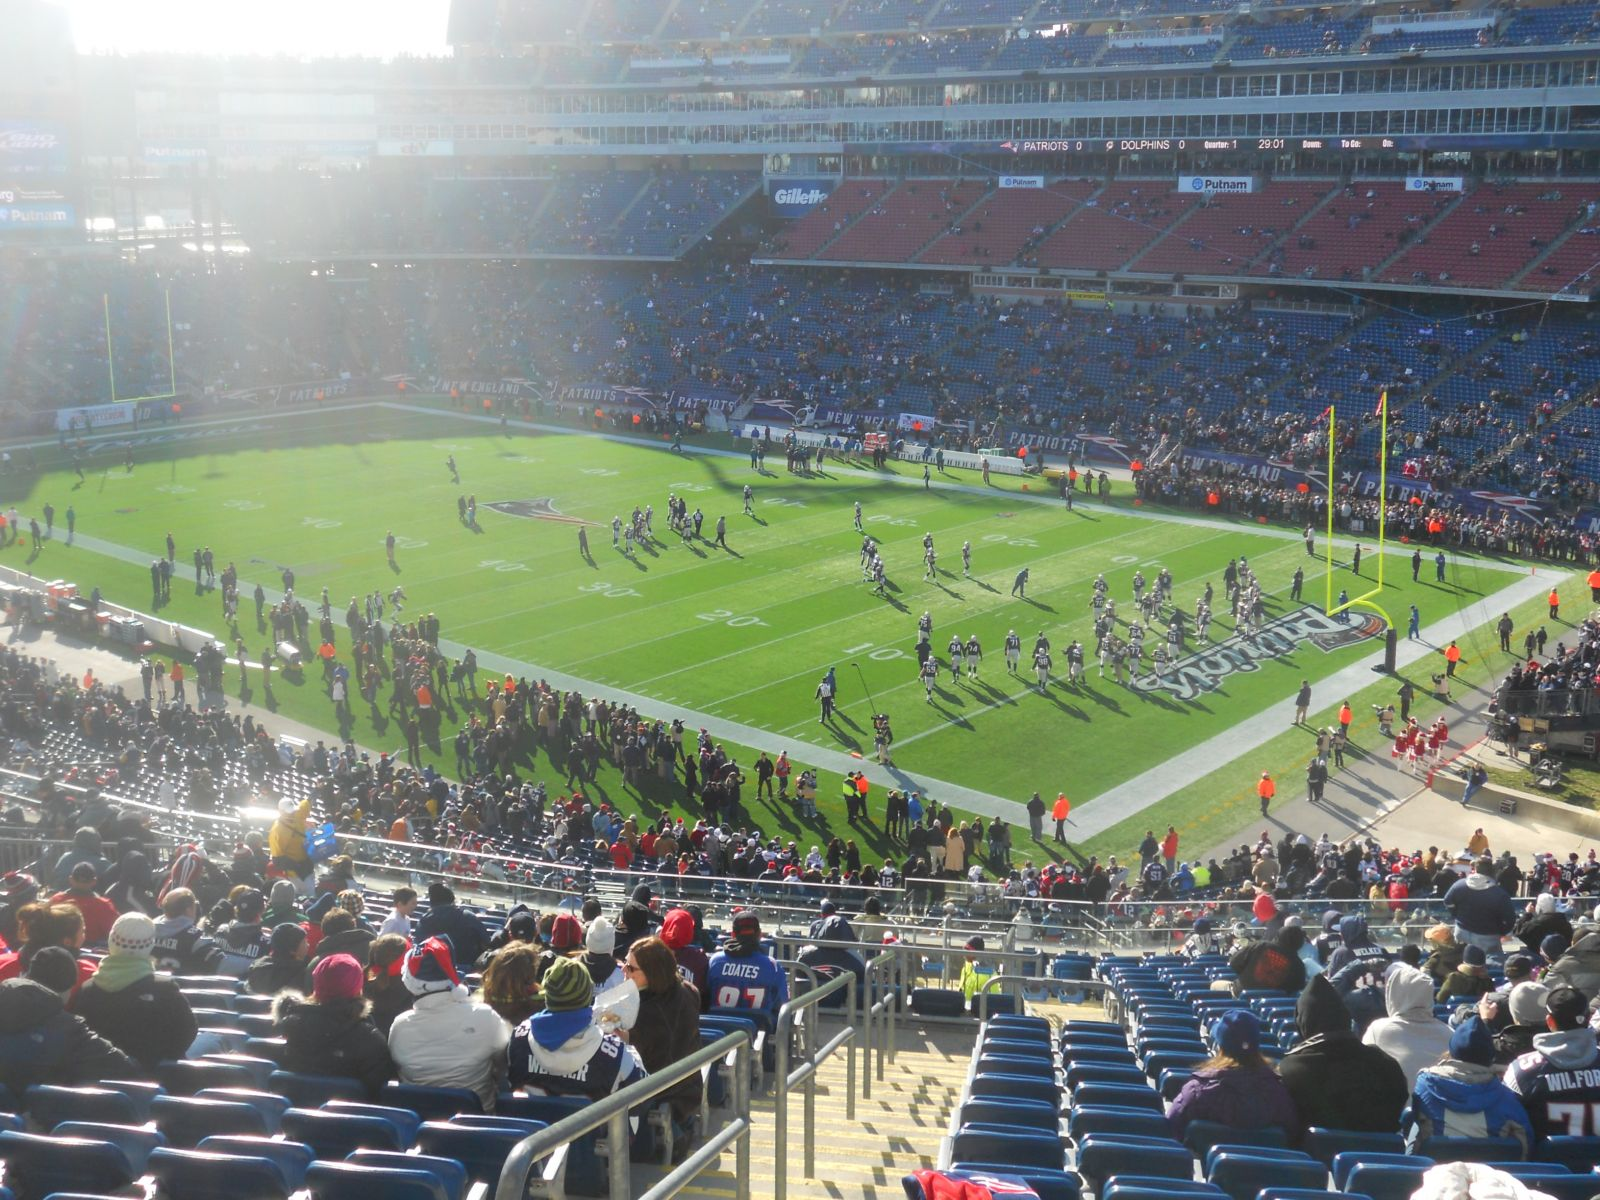 New England Patriots Seat View for Gillette Stadium Section 203, Row 24, Seat 29